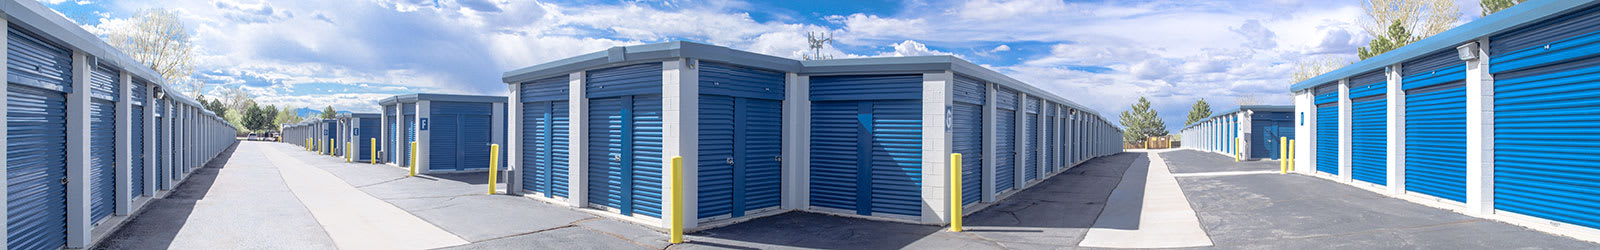 Find the right size for your needs at Security Self-Storage